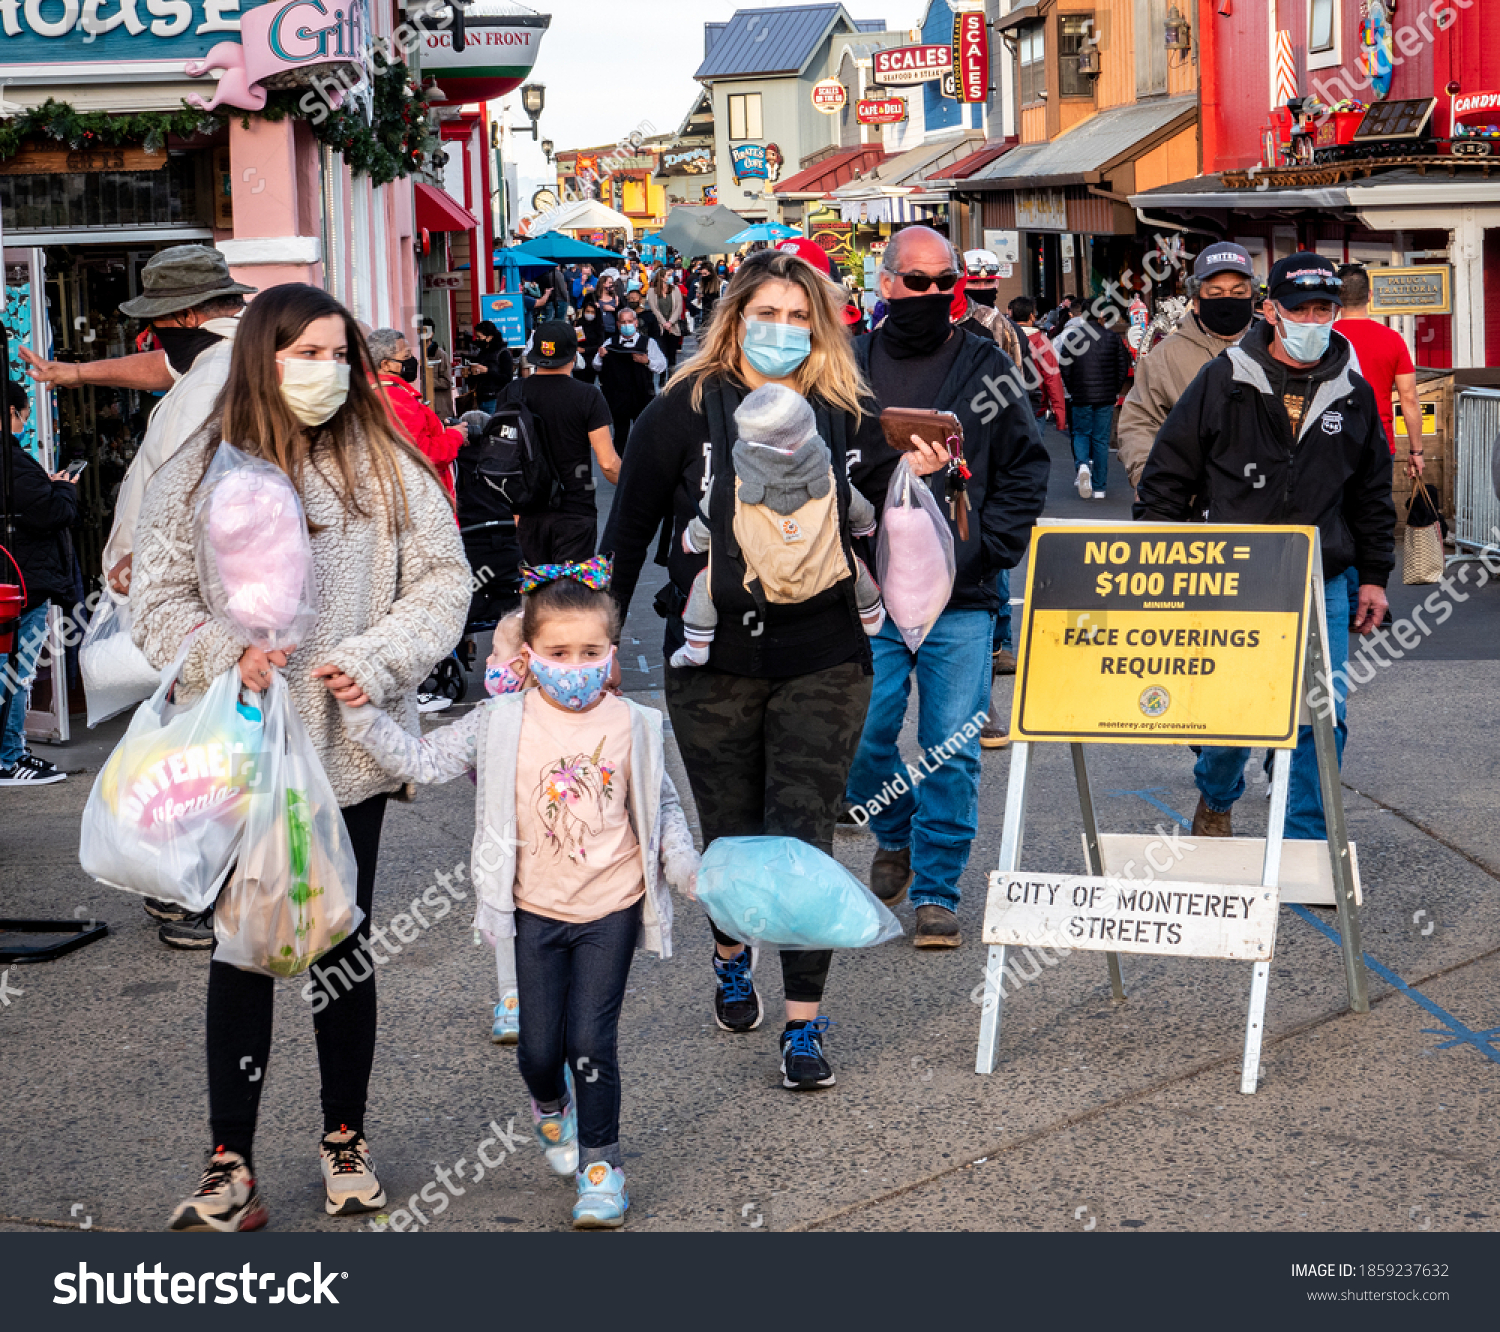 Monterey, California - November 21, 2020: Large crowds of people flock to Fisherman's Wharf, despite the global Covid19 Coronavirus pandemic, but don masks to avoid a $100 fine.